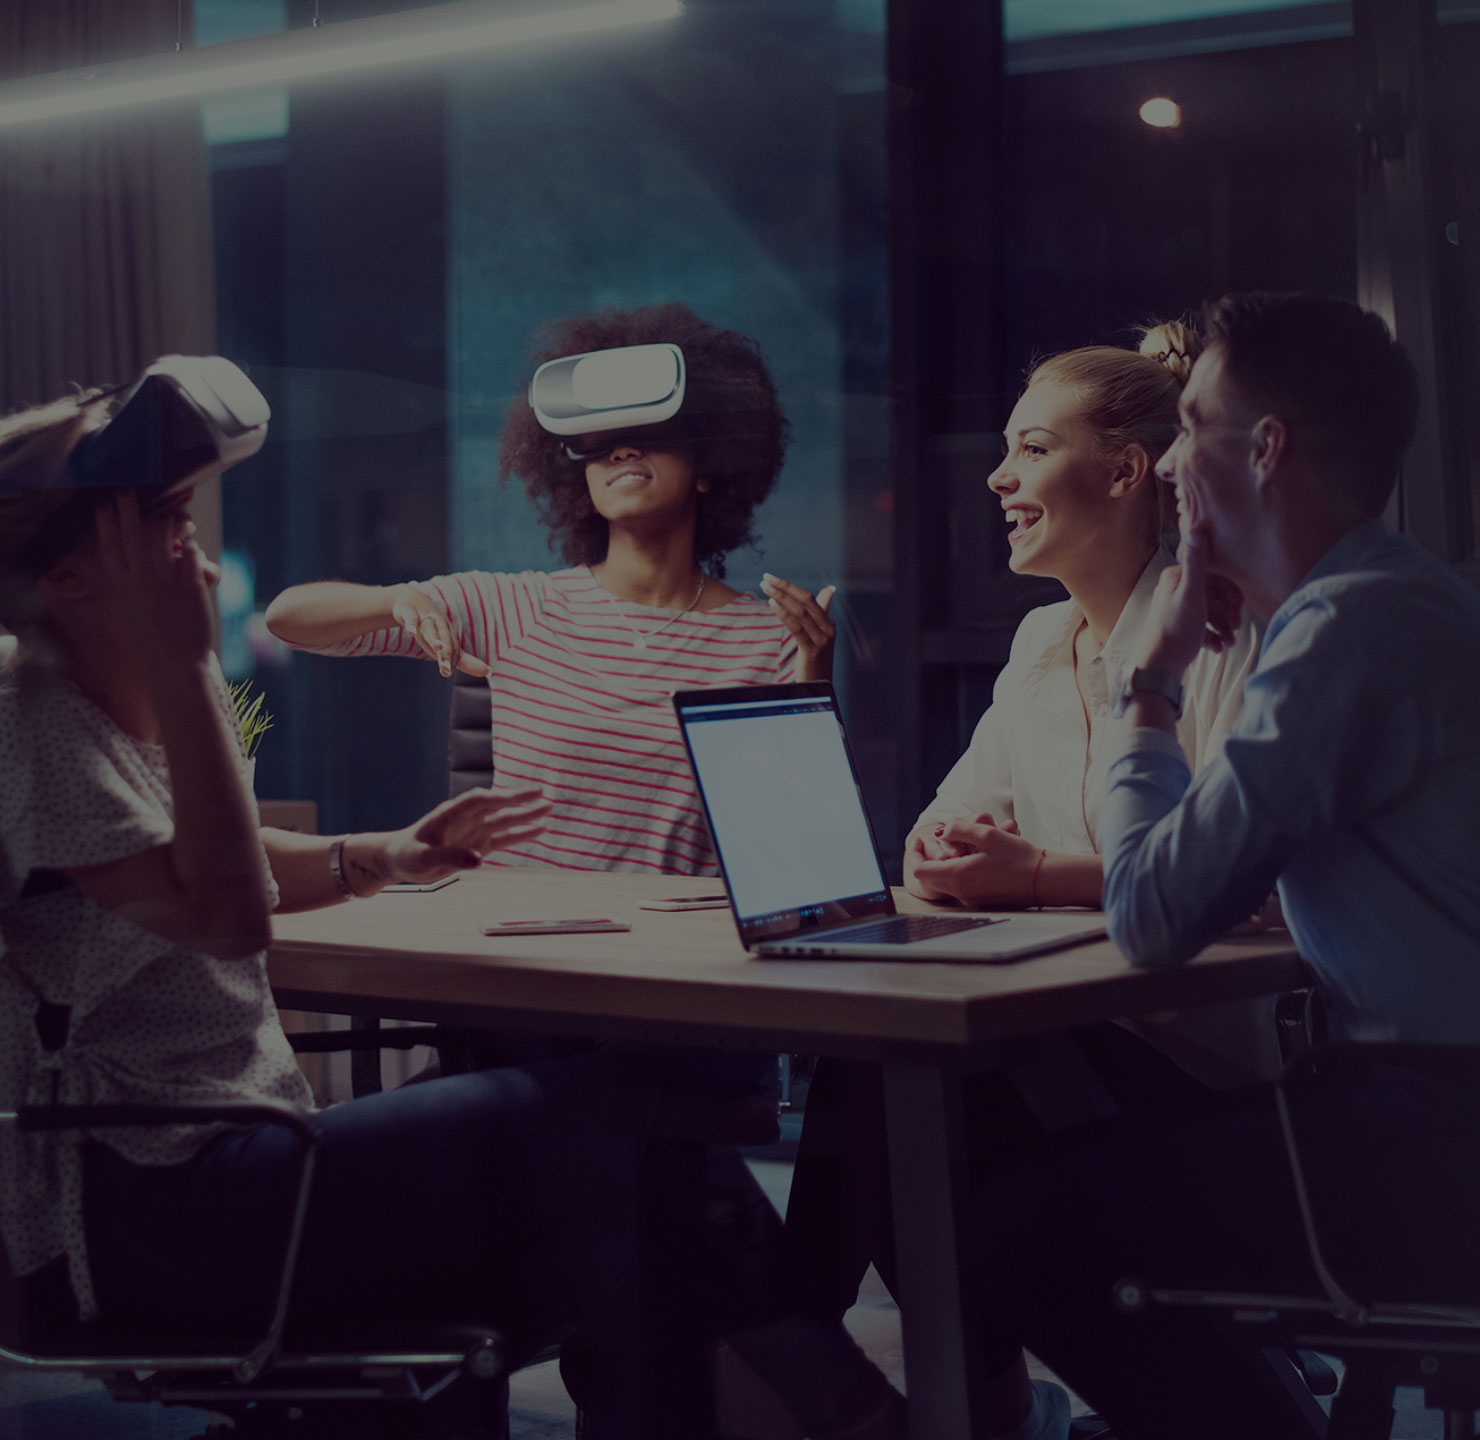 Why The Cfo Is Now Digital Transformation's Biggest Ally